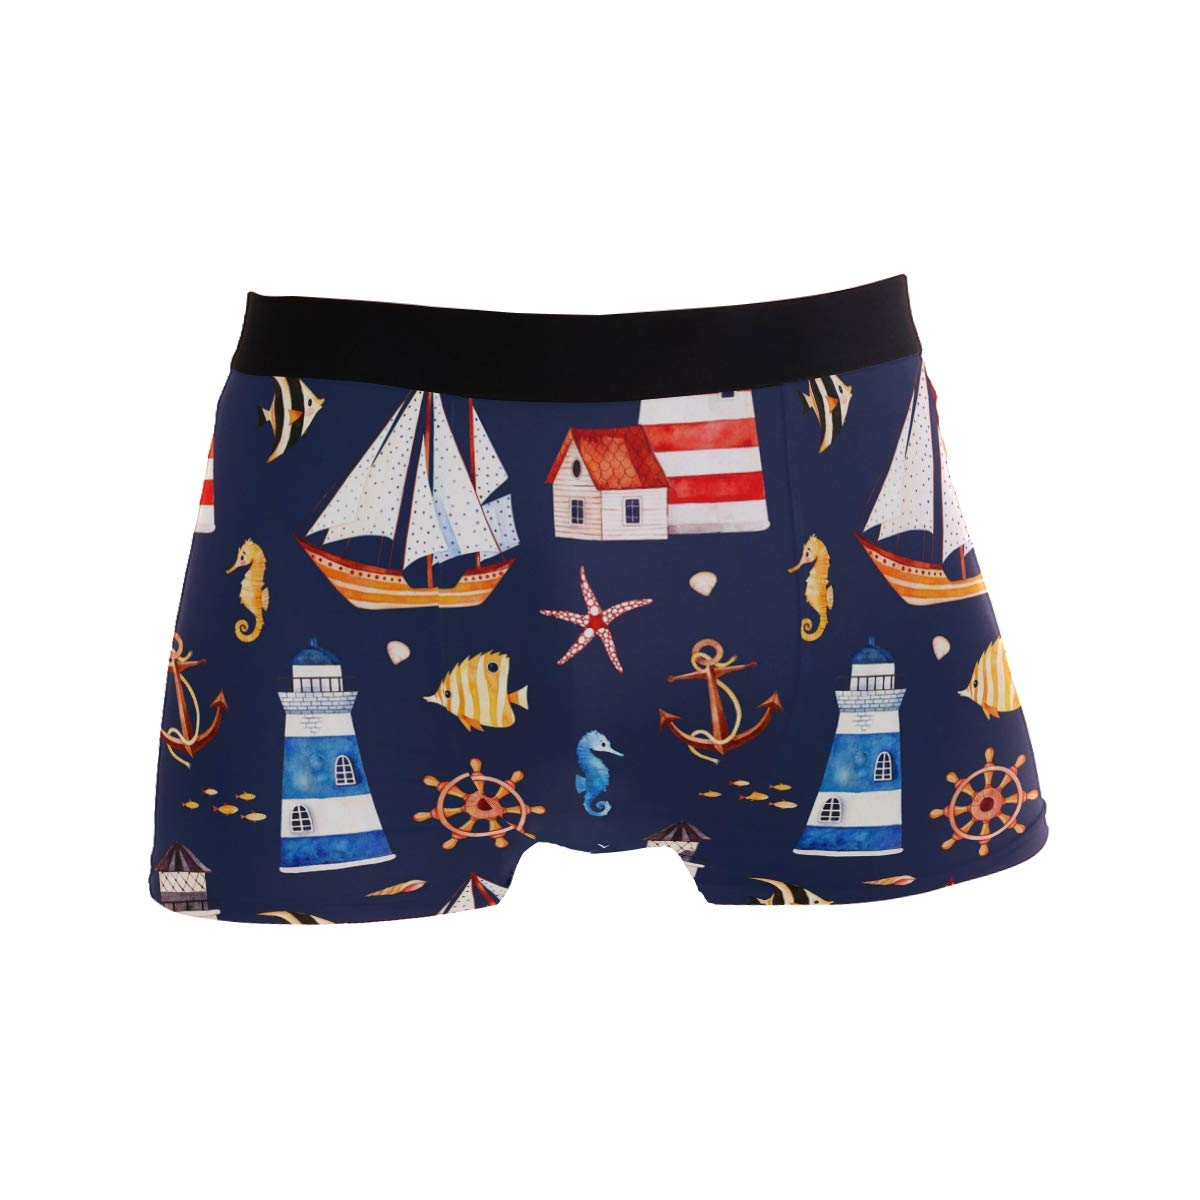 KUWT Starfish Anchor Lighthouses Sailboat Mens Boxer Briefs Underwear Comfortable Underpants for Mens Boys Youth